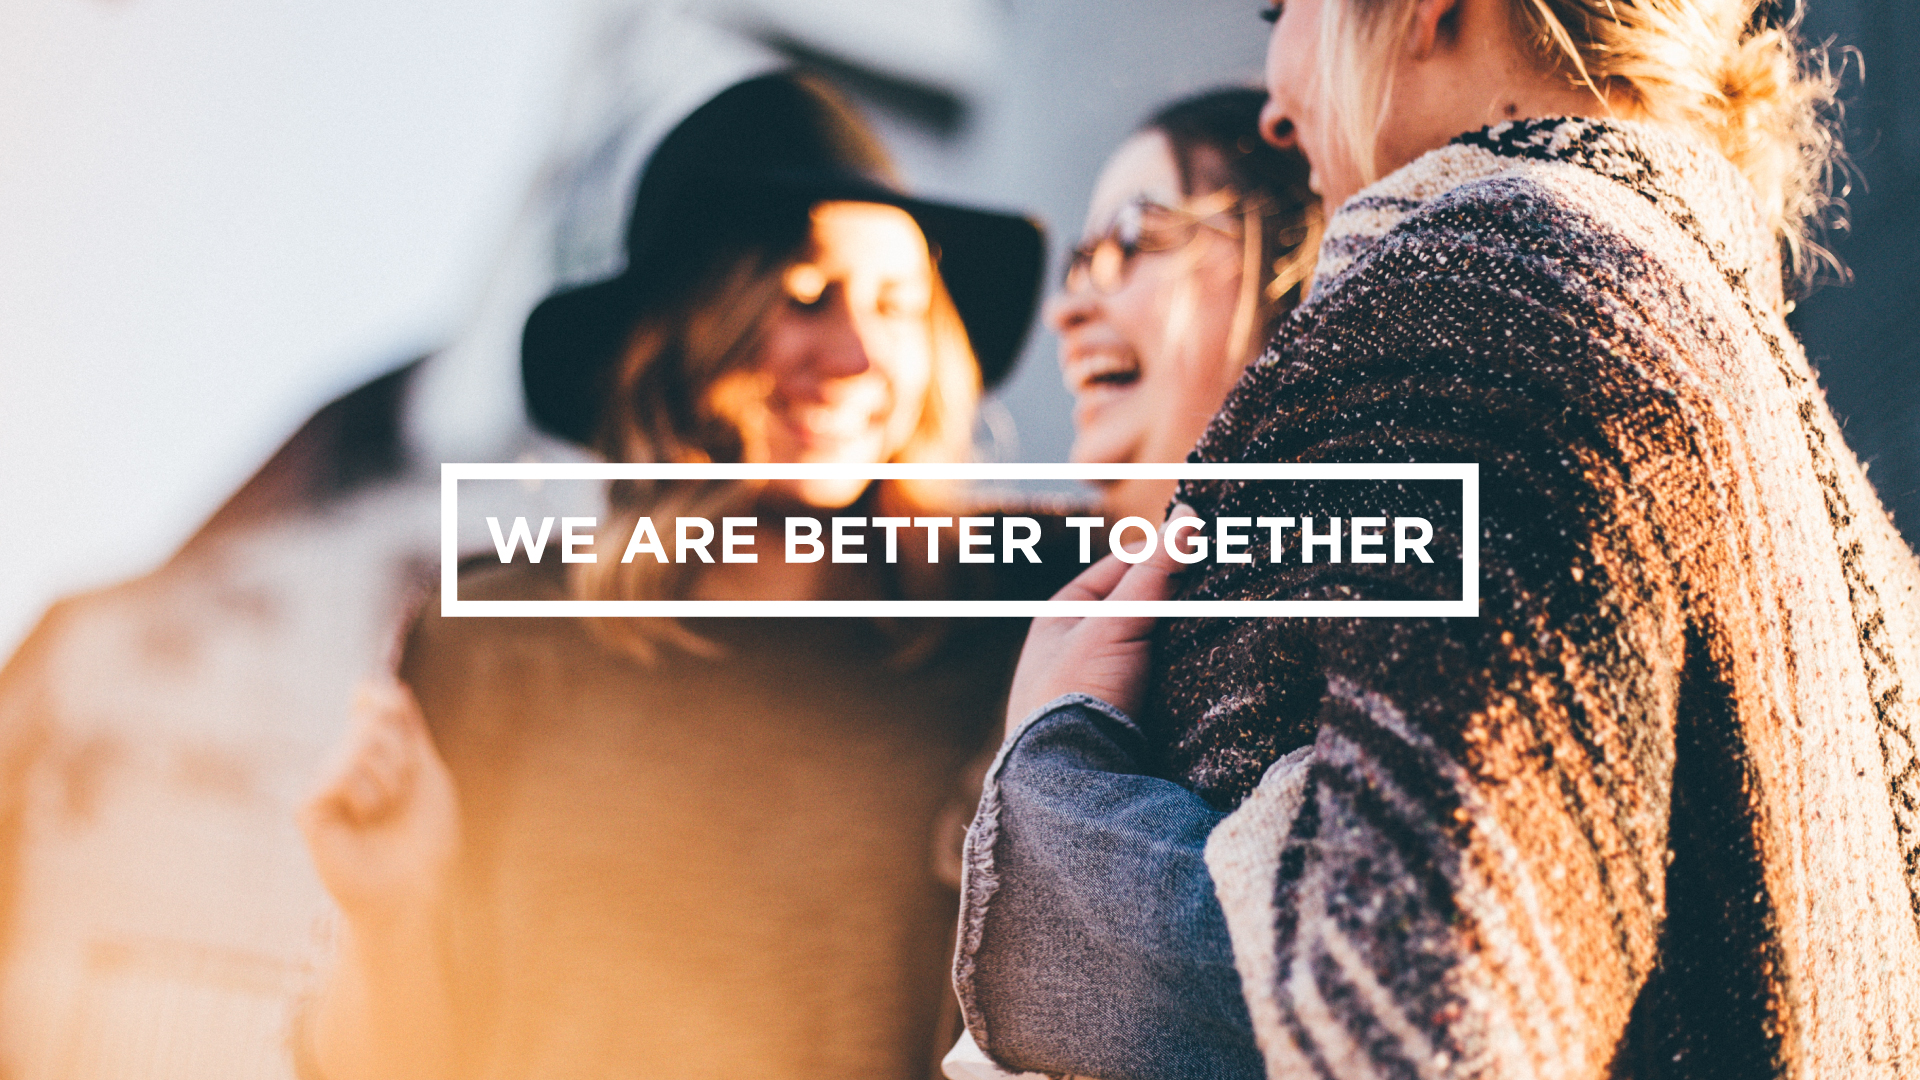 4. We Are Better Together - Jesus is a community builder. He is regularly pulling his disciples together in community. We want to pursue the way of Jesus together in the context of church community. Toward that end, we seek to embody the values of 1 Corinthians 13 in our relationships with one another. You can listen more to how we approach this value here.